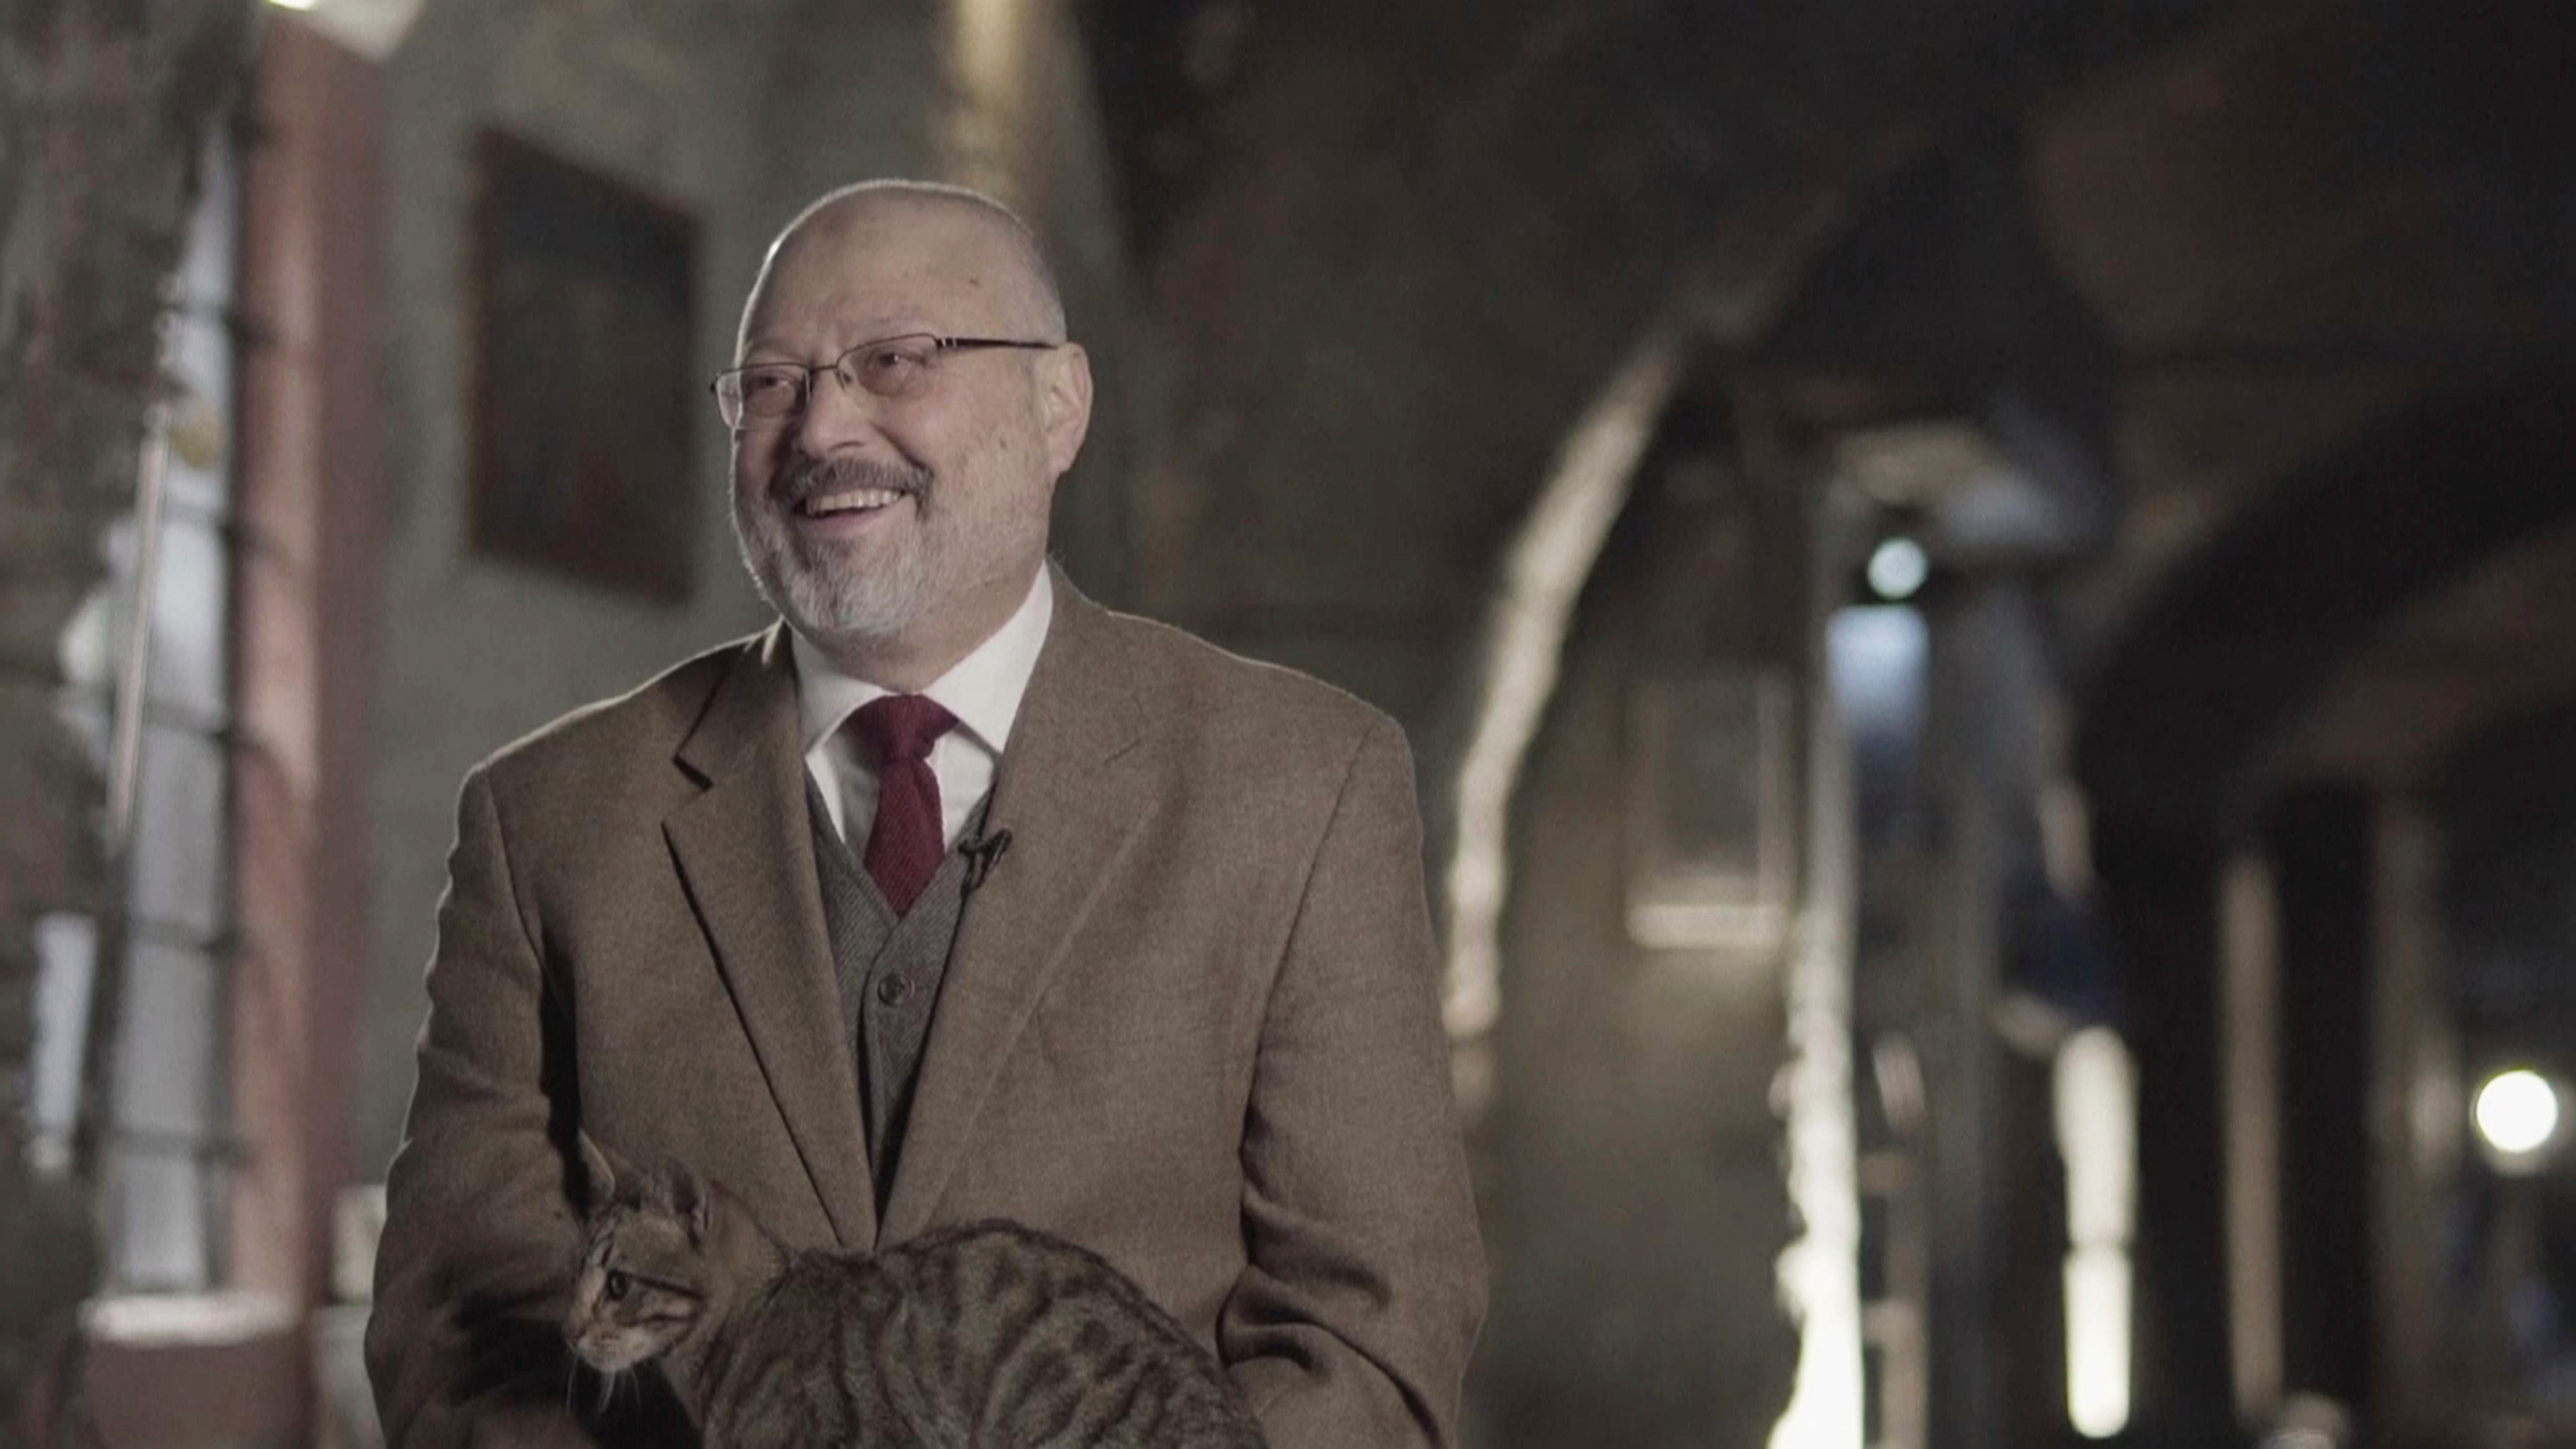 """In this image made from a March 2018 video provided by Metafora Production, Jamal Khashoggi reacts as a cat jumped on his lap, while speaking in an interview at an undisclosed location. Eighteen days after Khashoggi disappeared, Saudi Arabia acknowledged early Saturday, Oct. 20, 2018, that the 59-year-old writer has died in what it said was a """"fistfight"""" inside the Saudi consulate in Istanbul."""